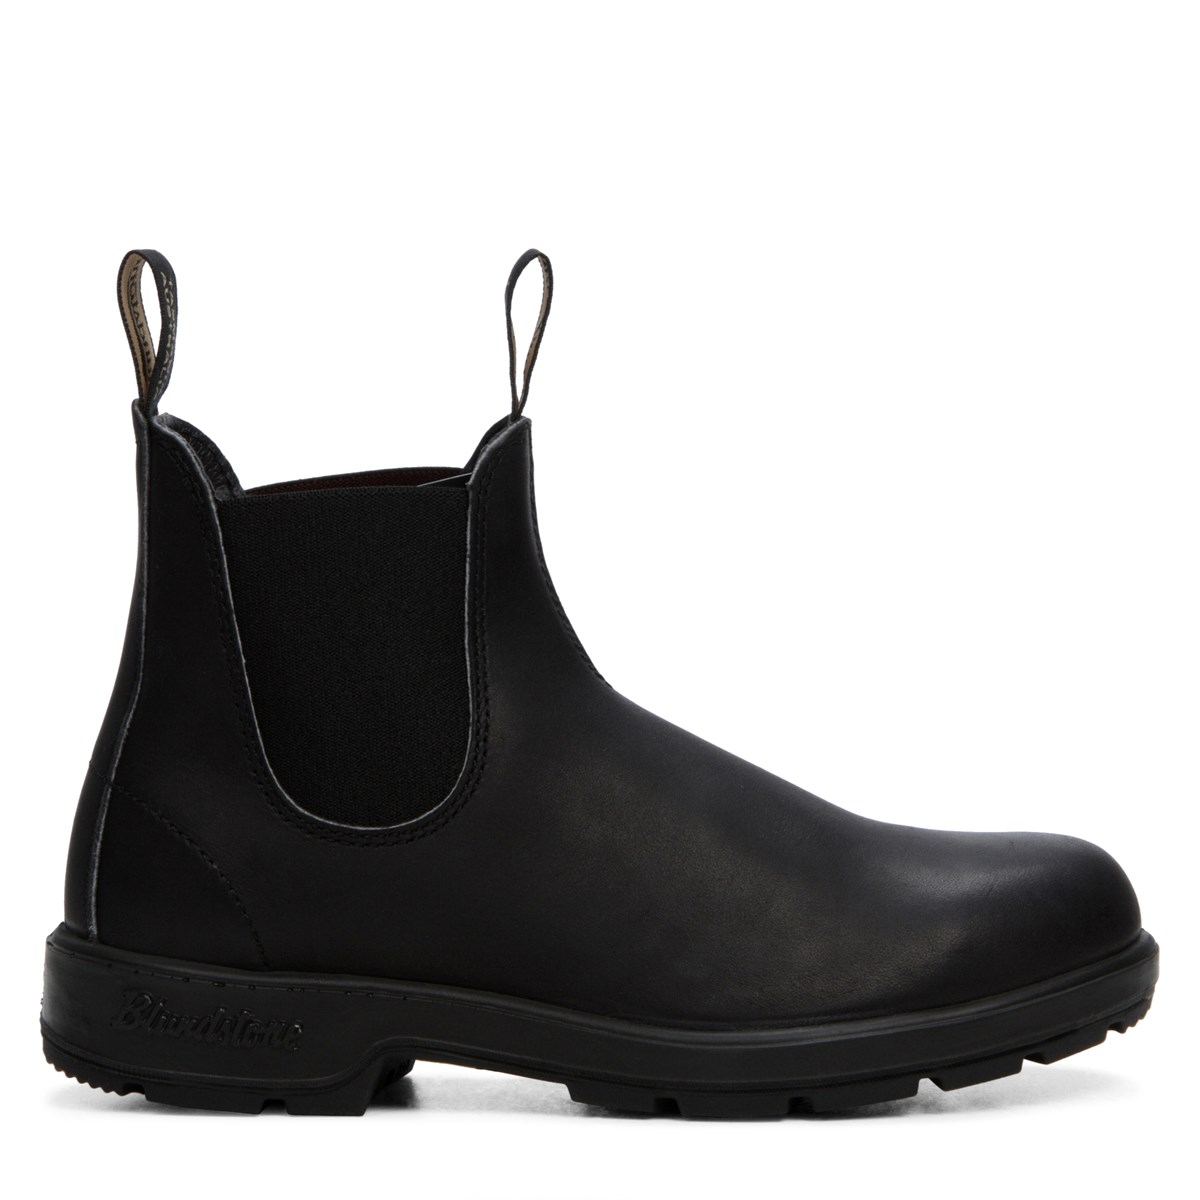 Men's Leather Lined Black Boots